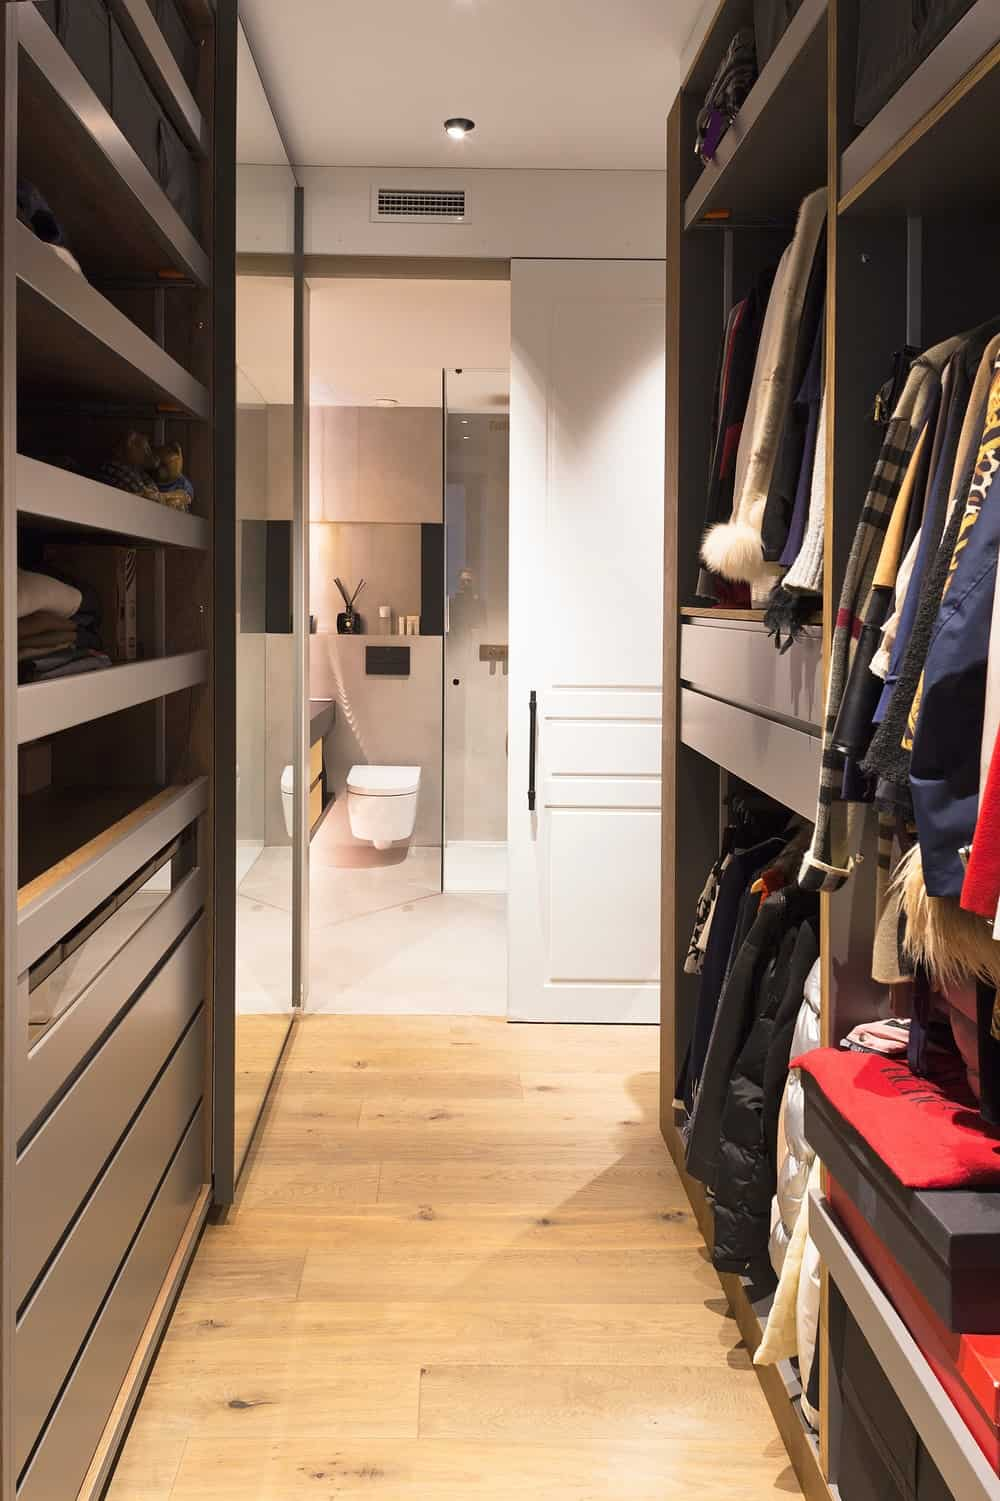 At the edge of this walk-in closet is the access to the bathroom.